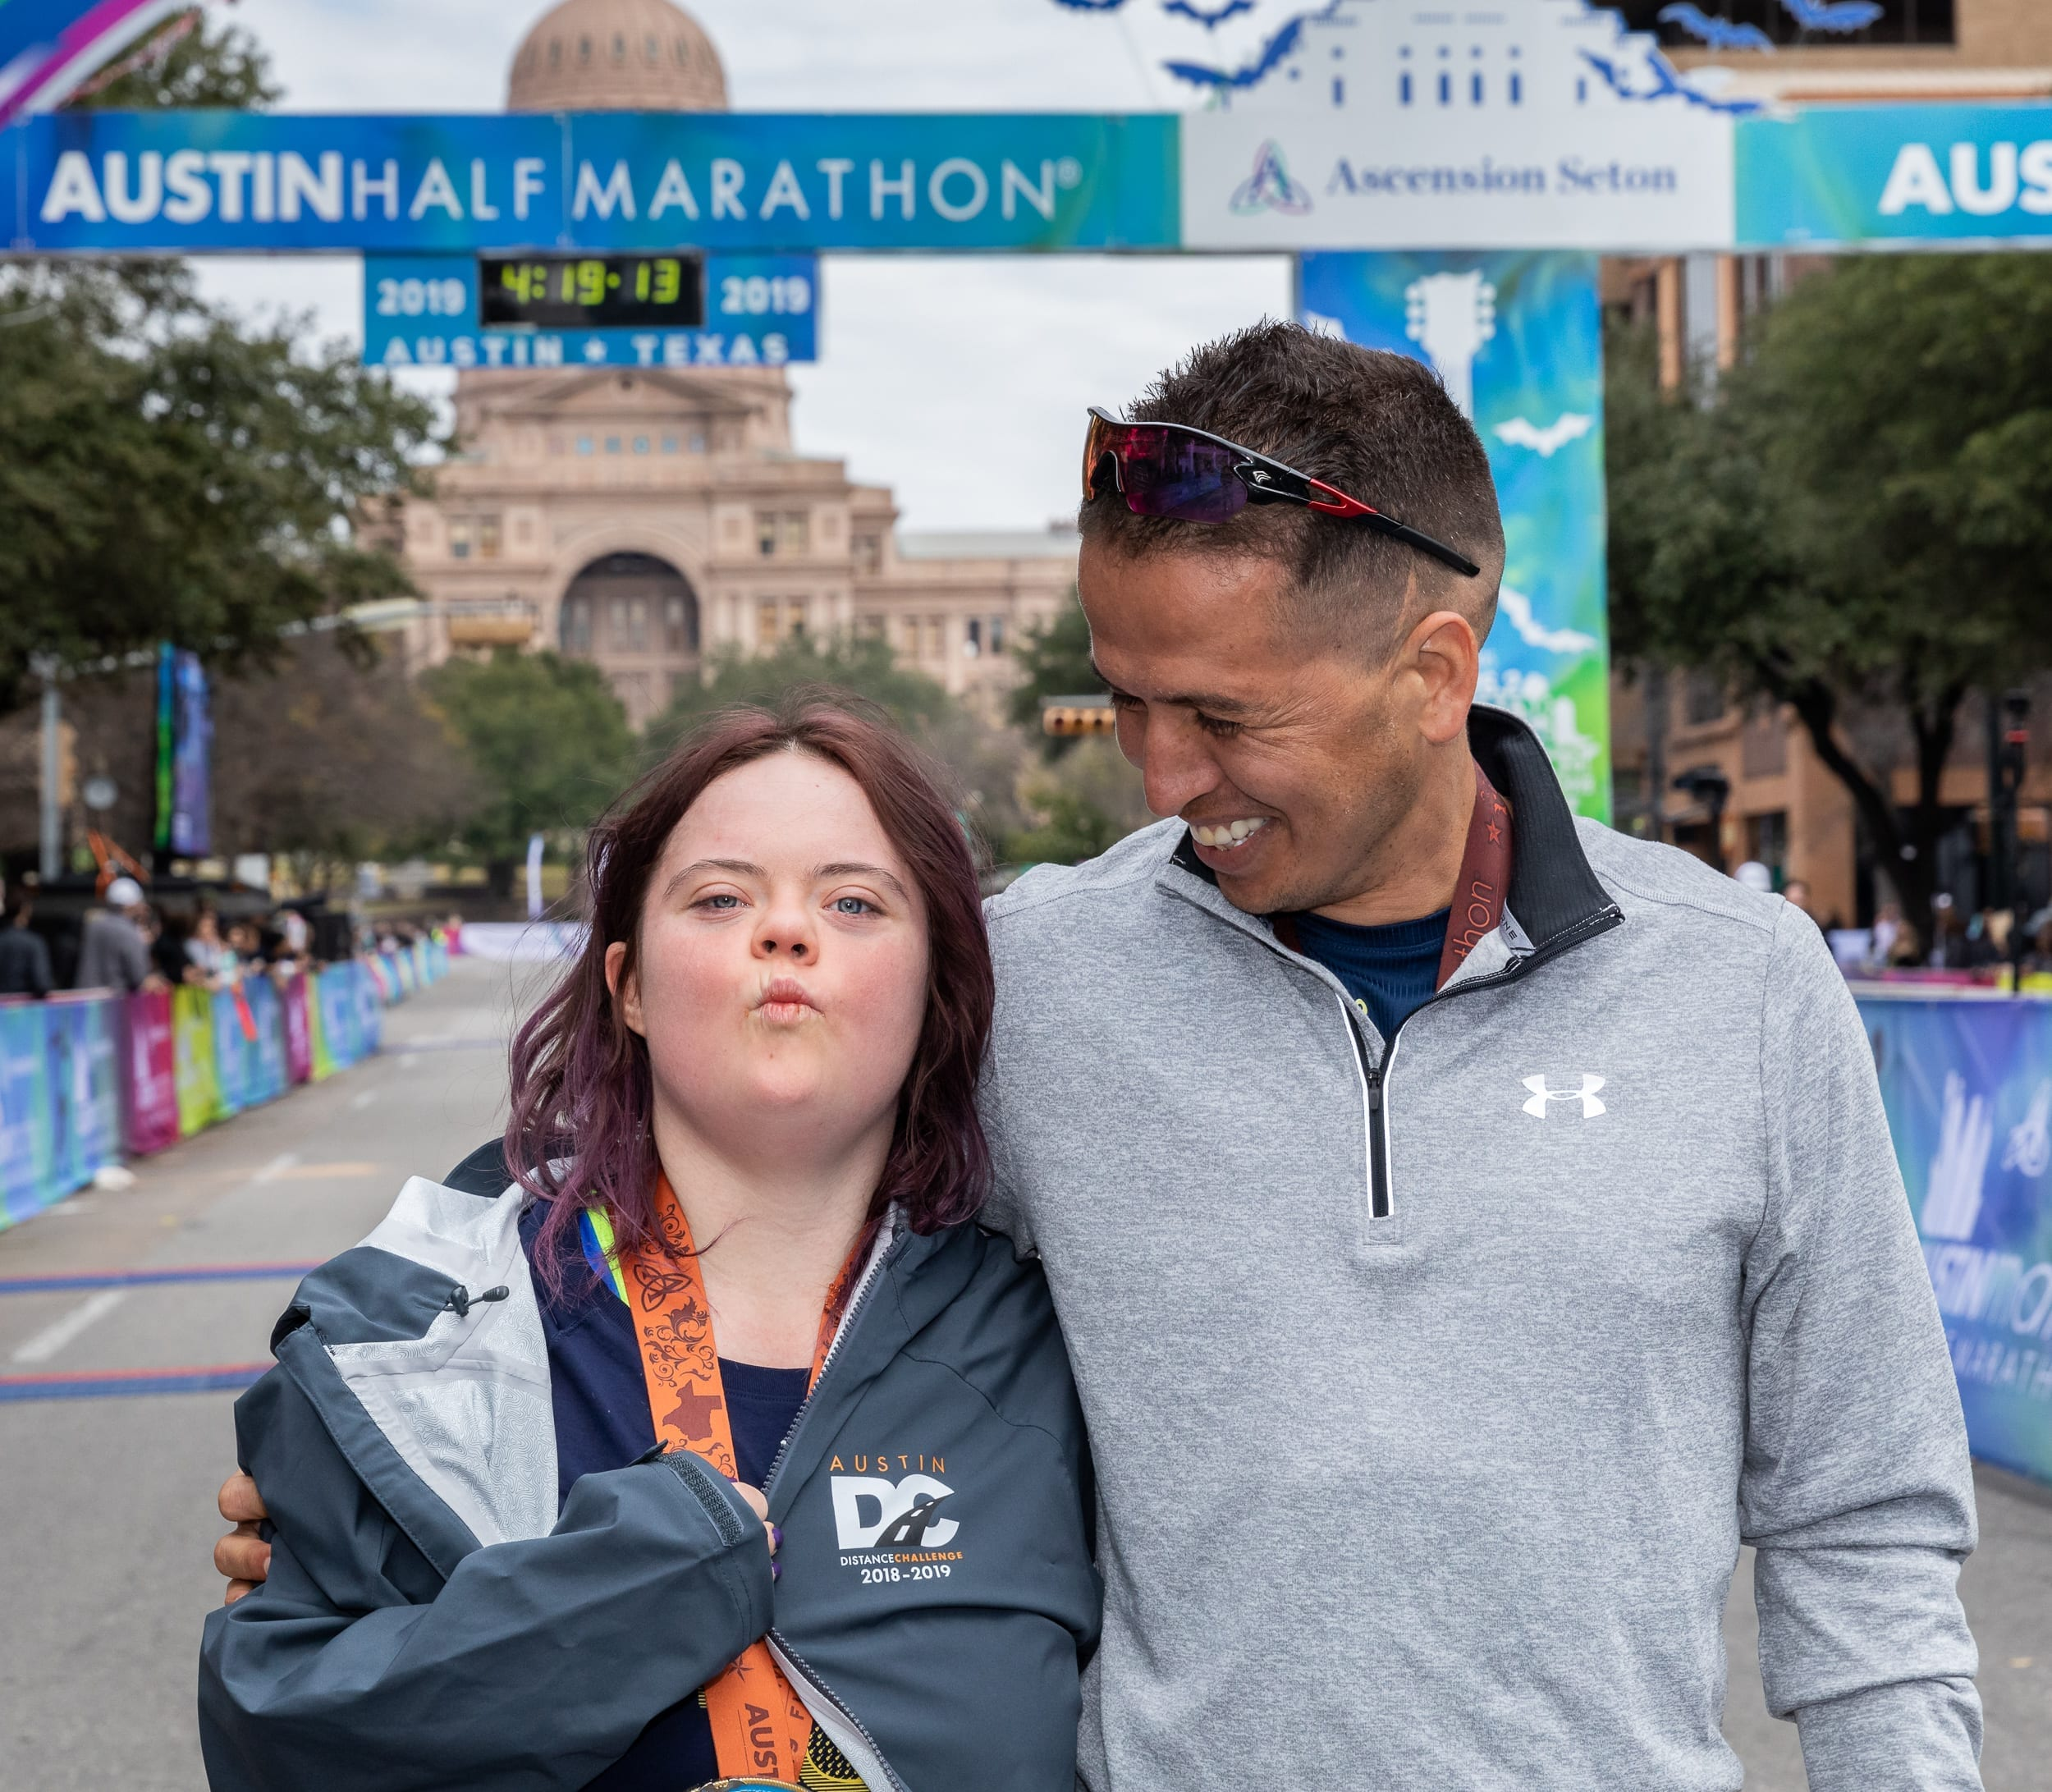 Kayleigh Williamson, the first runner with Down syndrome to cross the Austin Half Marathon finish line, is putting her mark on the world through running.